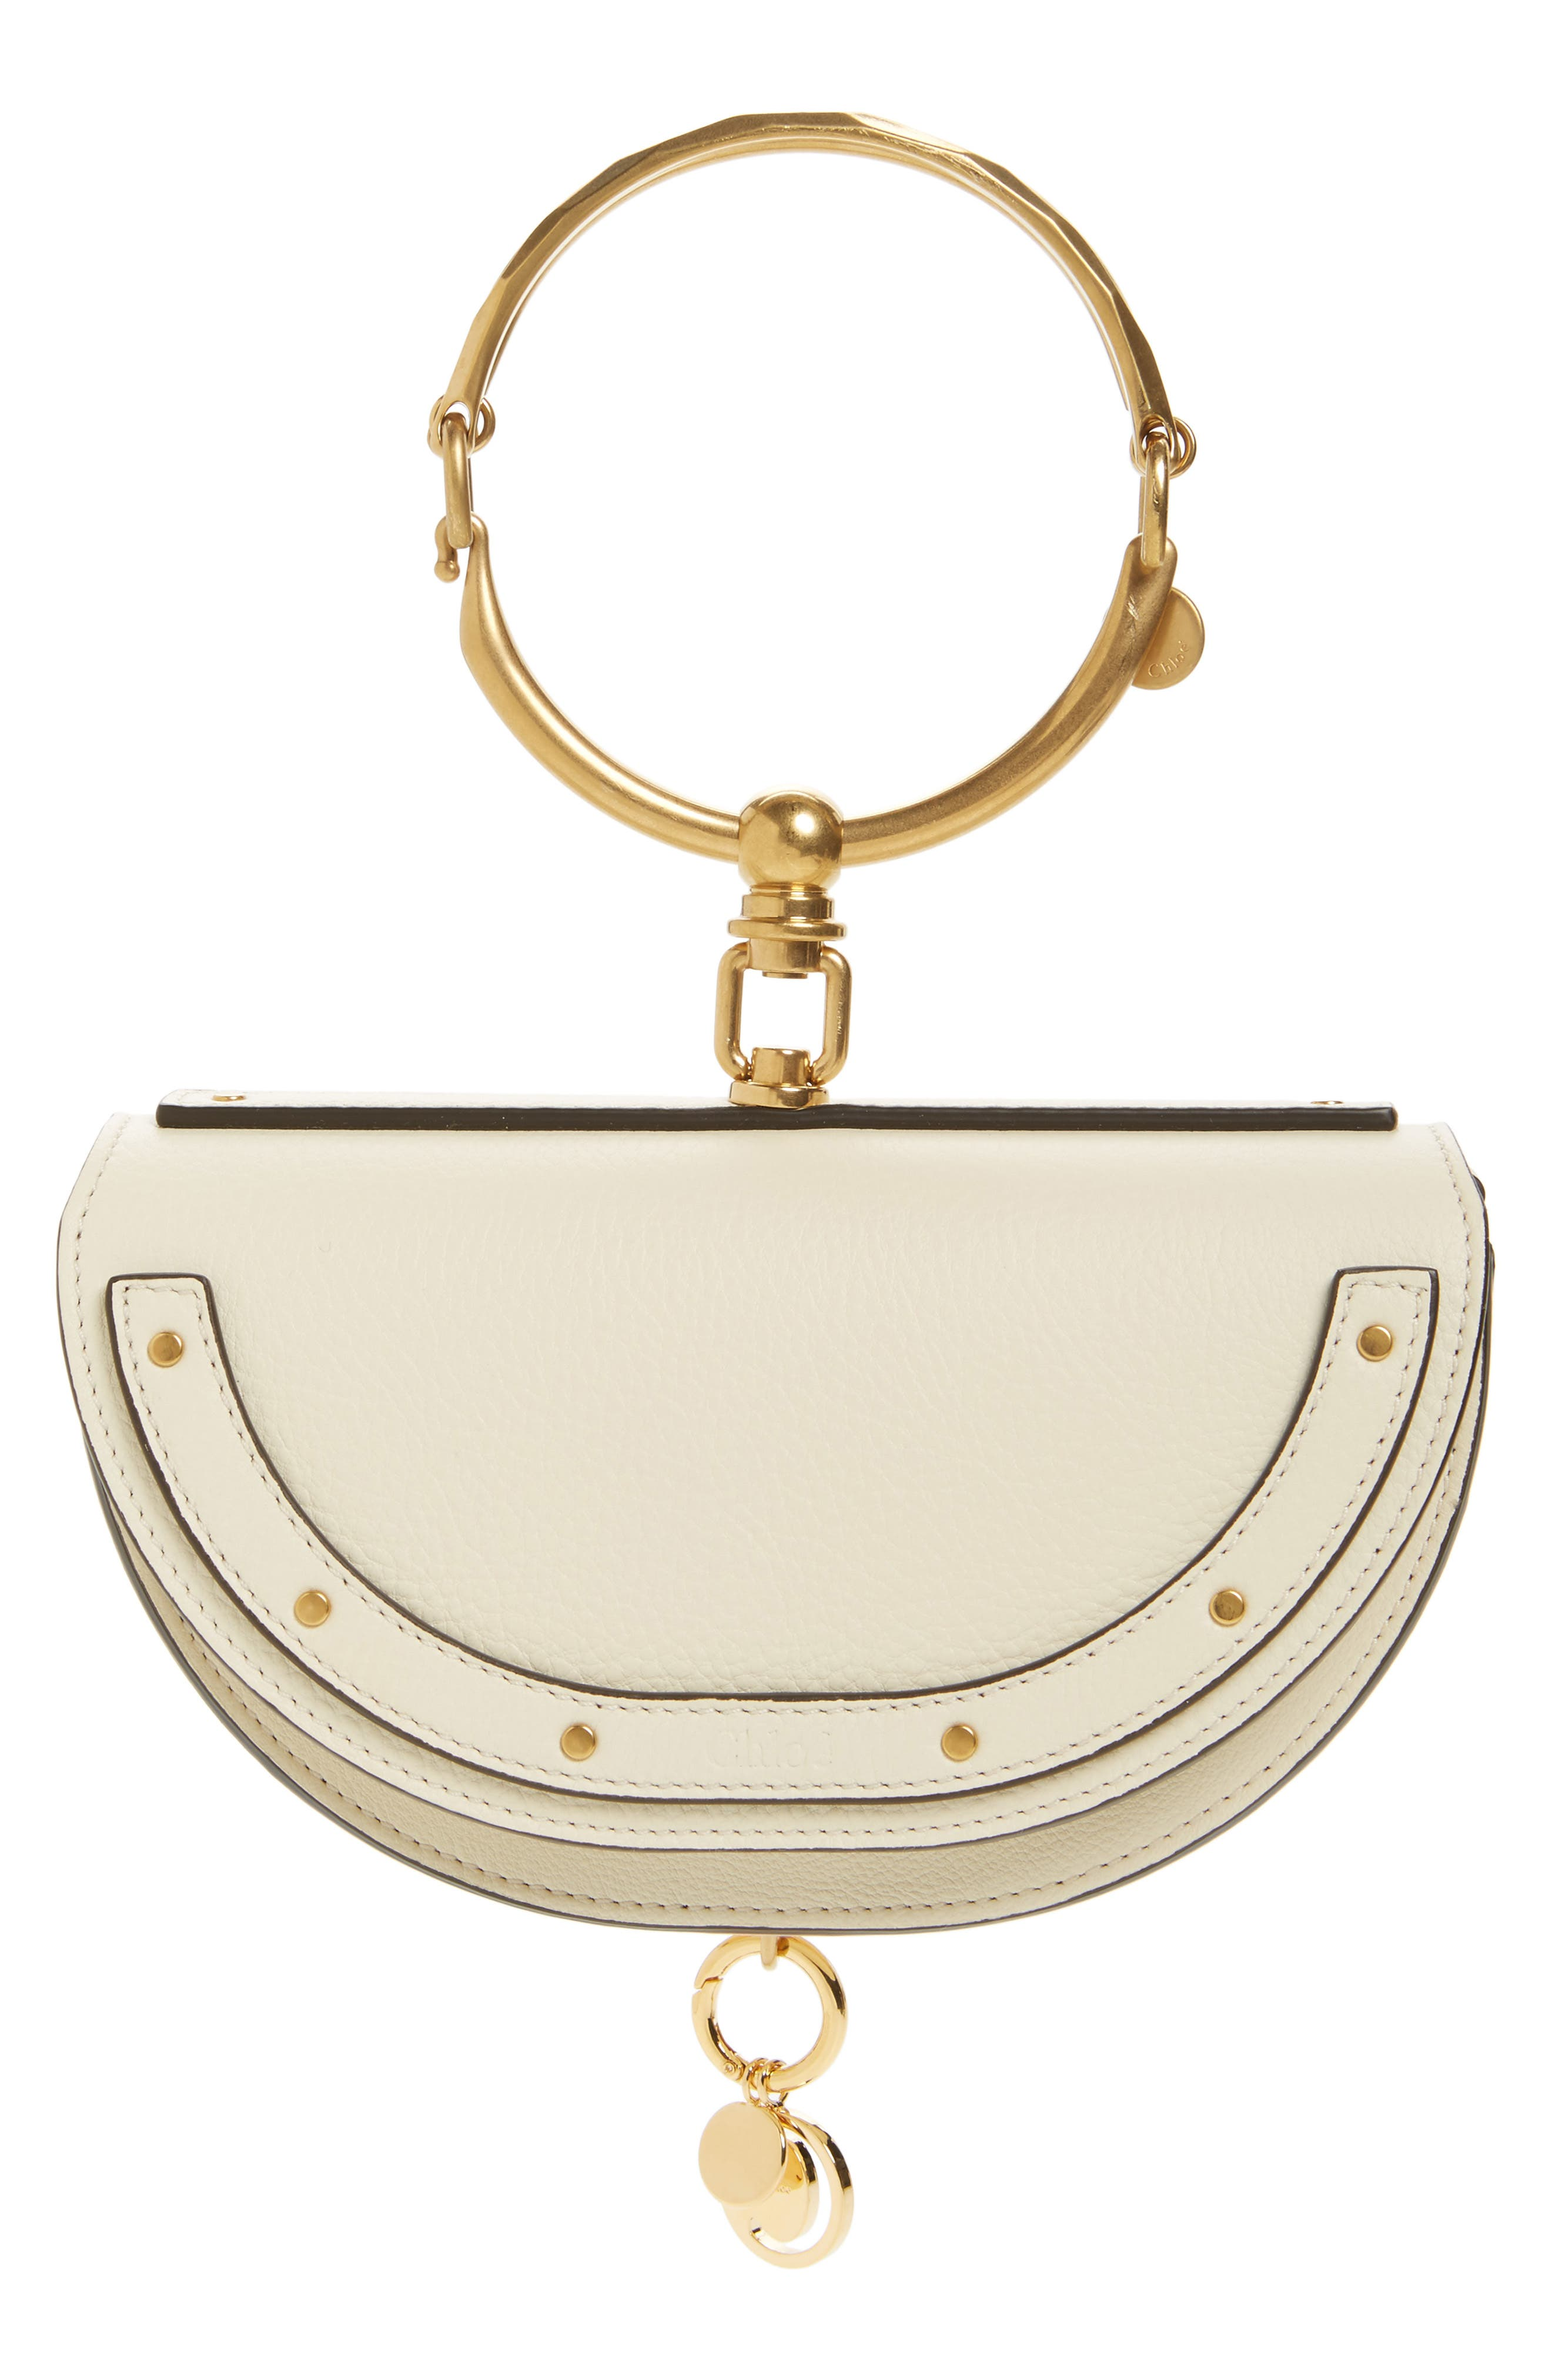 Alternate Image 1 Selected - Chloé Small Nile Bracelet Calfskin Leather Minaudiere